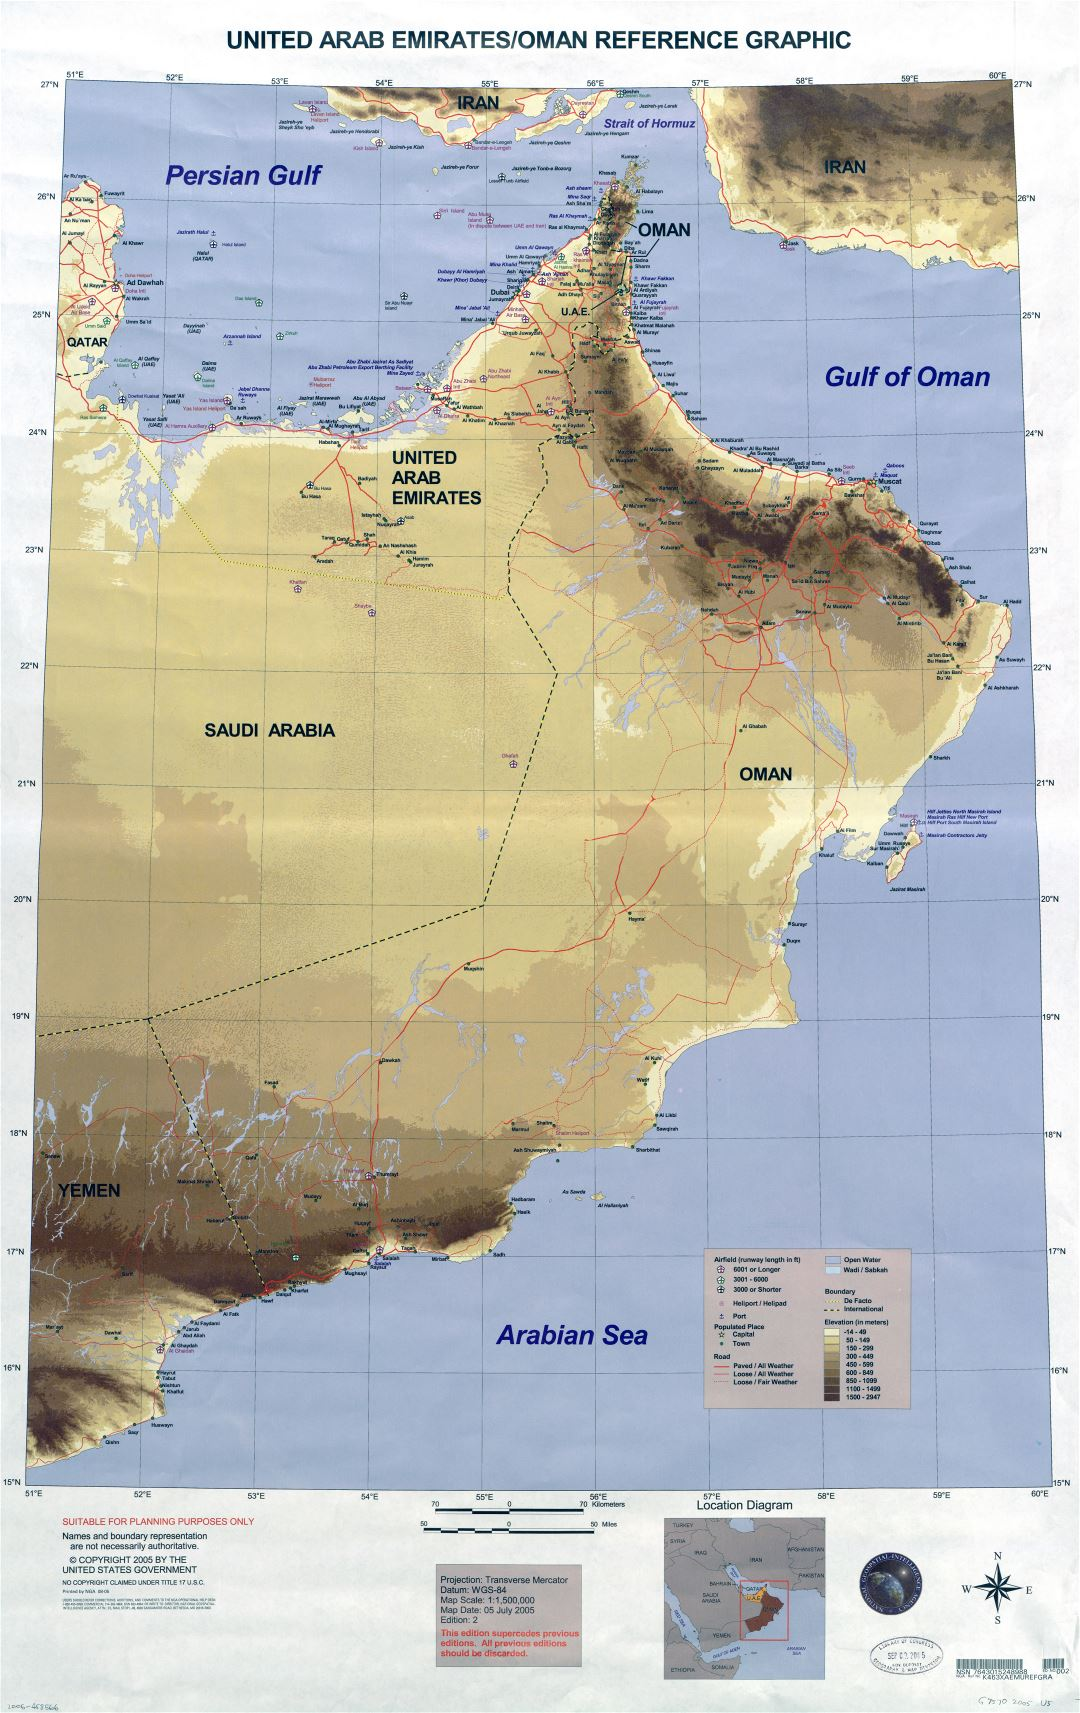 Large scale detailed elevation map of United Arab Emirates and Oman with airports, ports, heliports, cities, towns, roads and other marks - 2005